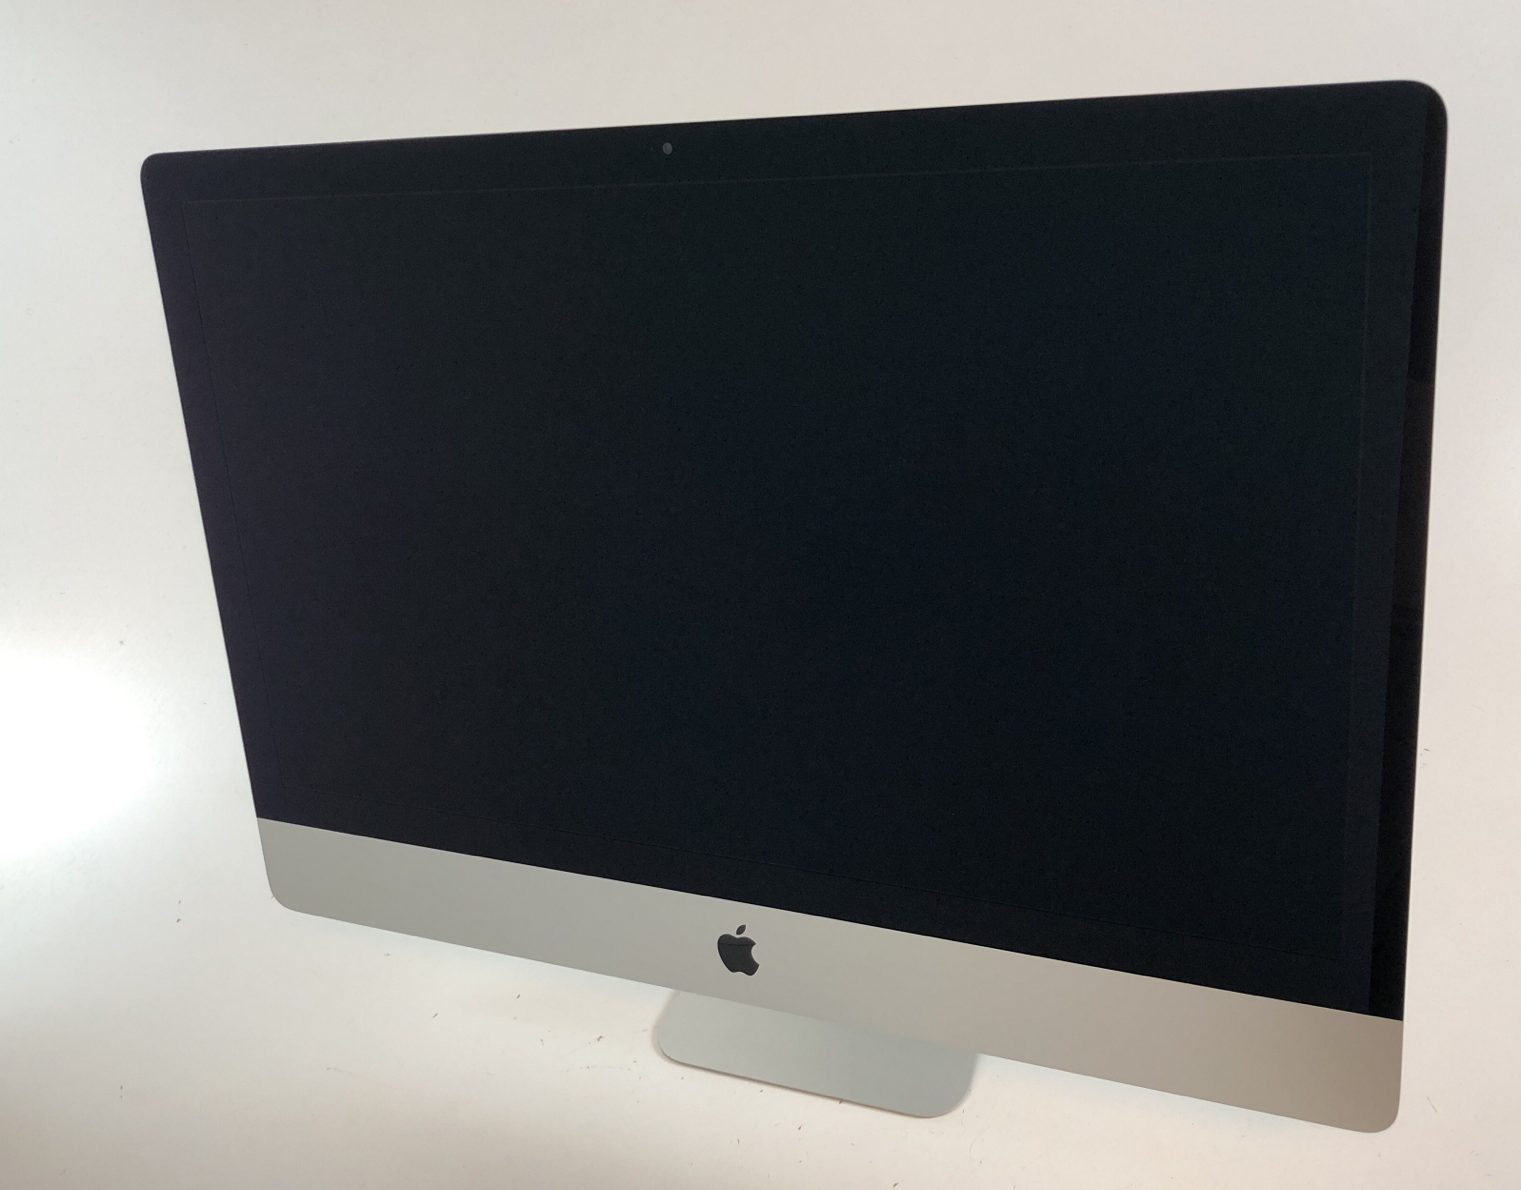 "iMac 27"" Late 2013 (Intel Quad-Core i5 3.4 GHz 32 GB RAM 1 TB SSD), Intel Quad-Core i5 3.4 GHz, 32 GB RAM, 1 TB SSD, Kuva 1"